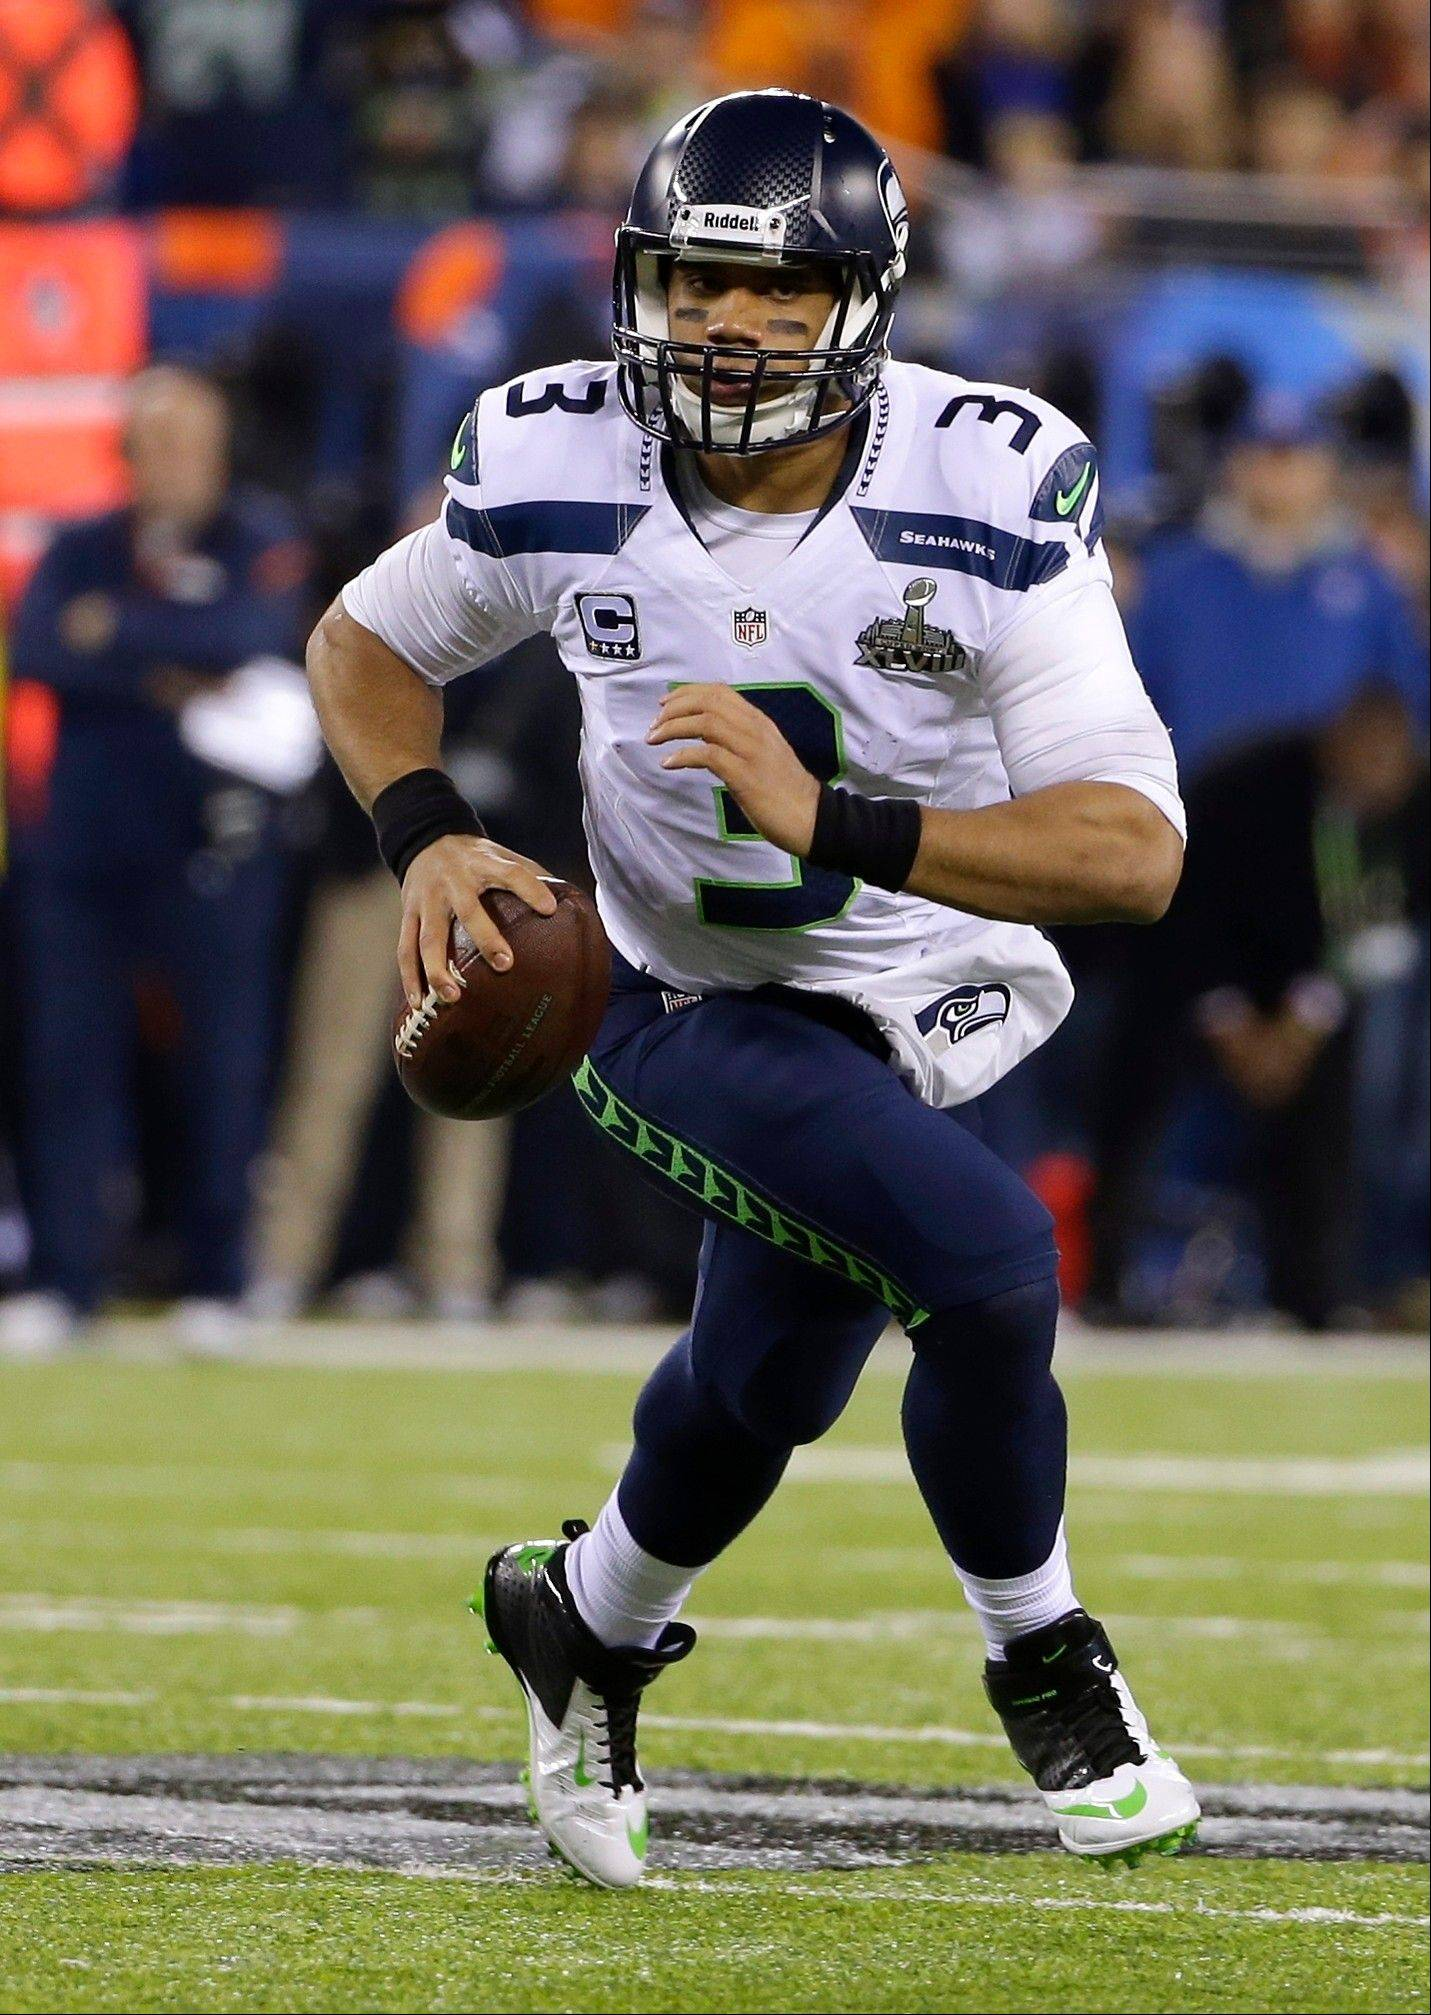 The brilliant performance of Seahawks quarterback Russell Wilson in Super Bowl XLVIII on Sunday is unquestionably the most overlooked aspect of the beating Seattle put on Denver, according to Barry Rozner, who points out: the scary part for the NFC is Seattle was the second-youngest Super Bowl-winning team ever and the Seahawks don't have to pay Wilson for two more years.